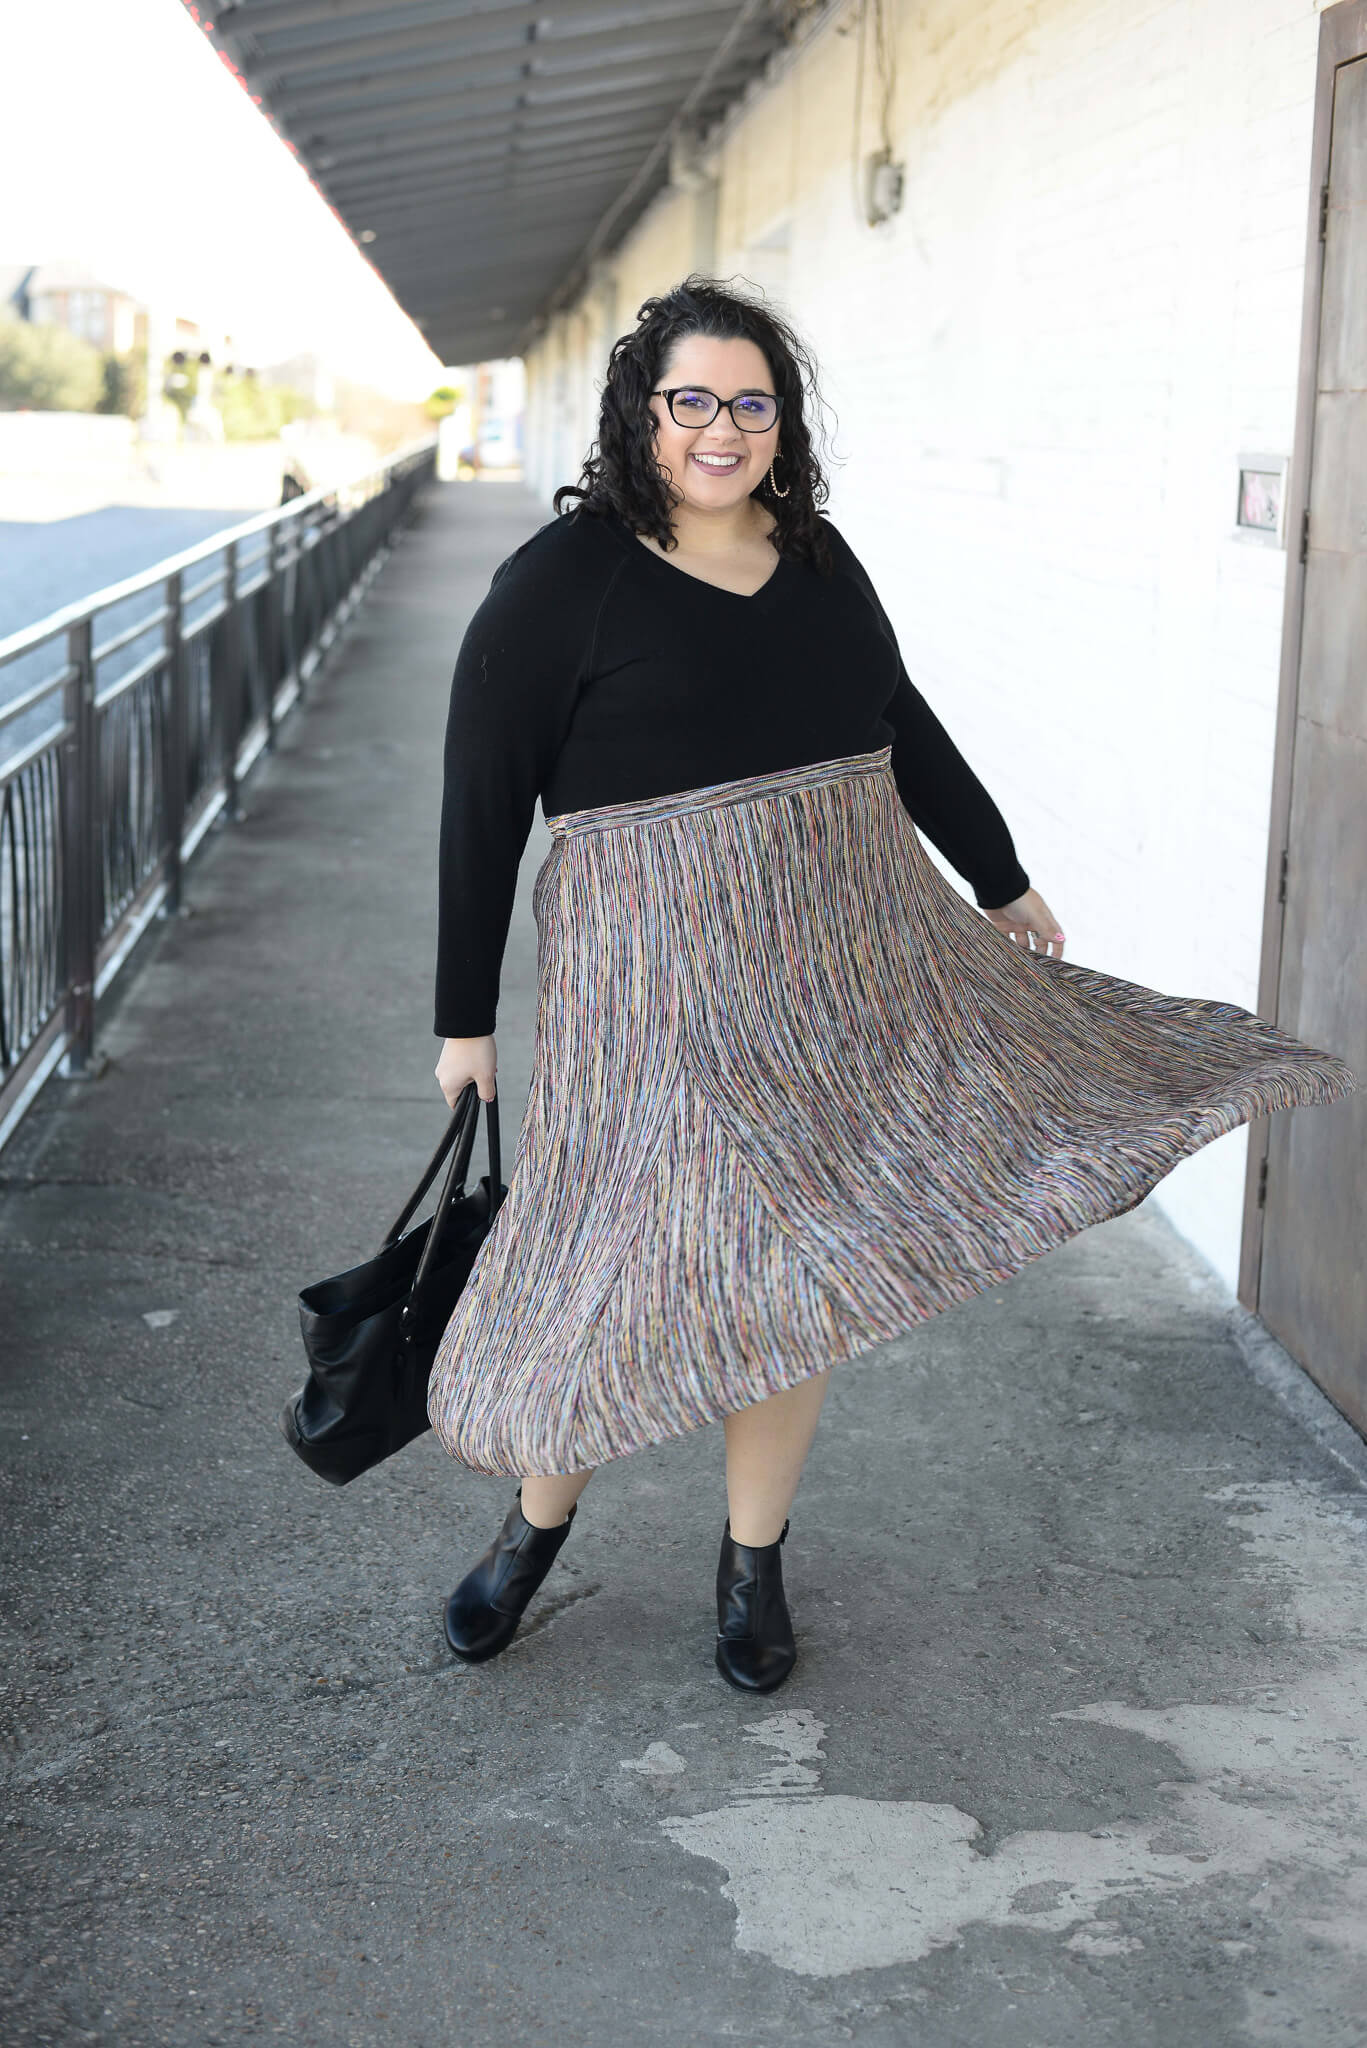 Heading into the office in a colorful plus size skirt